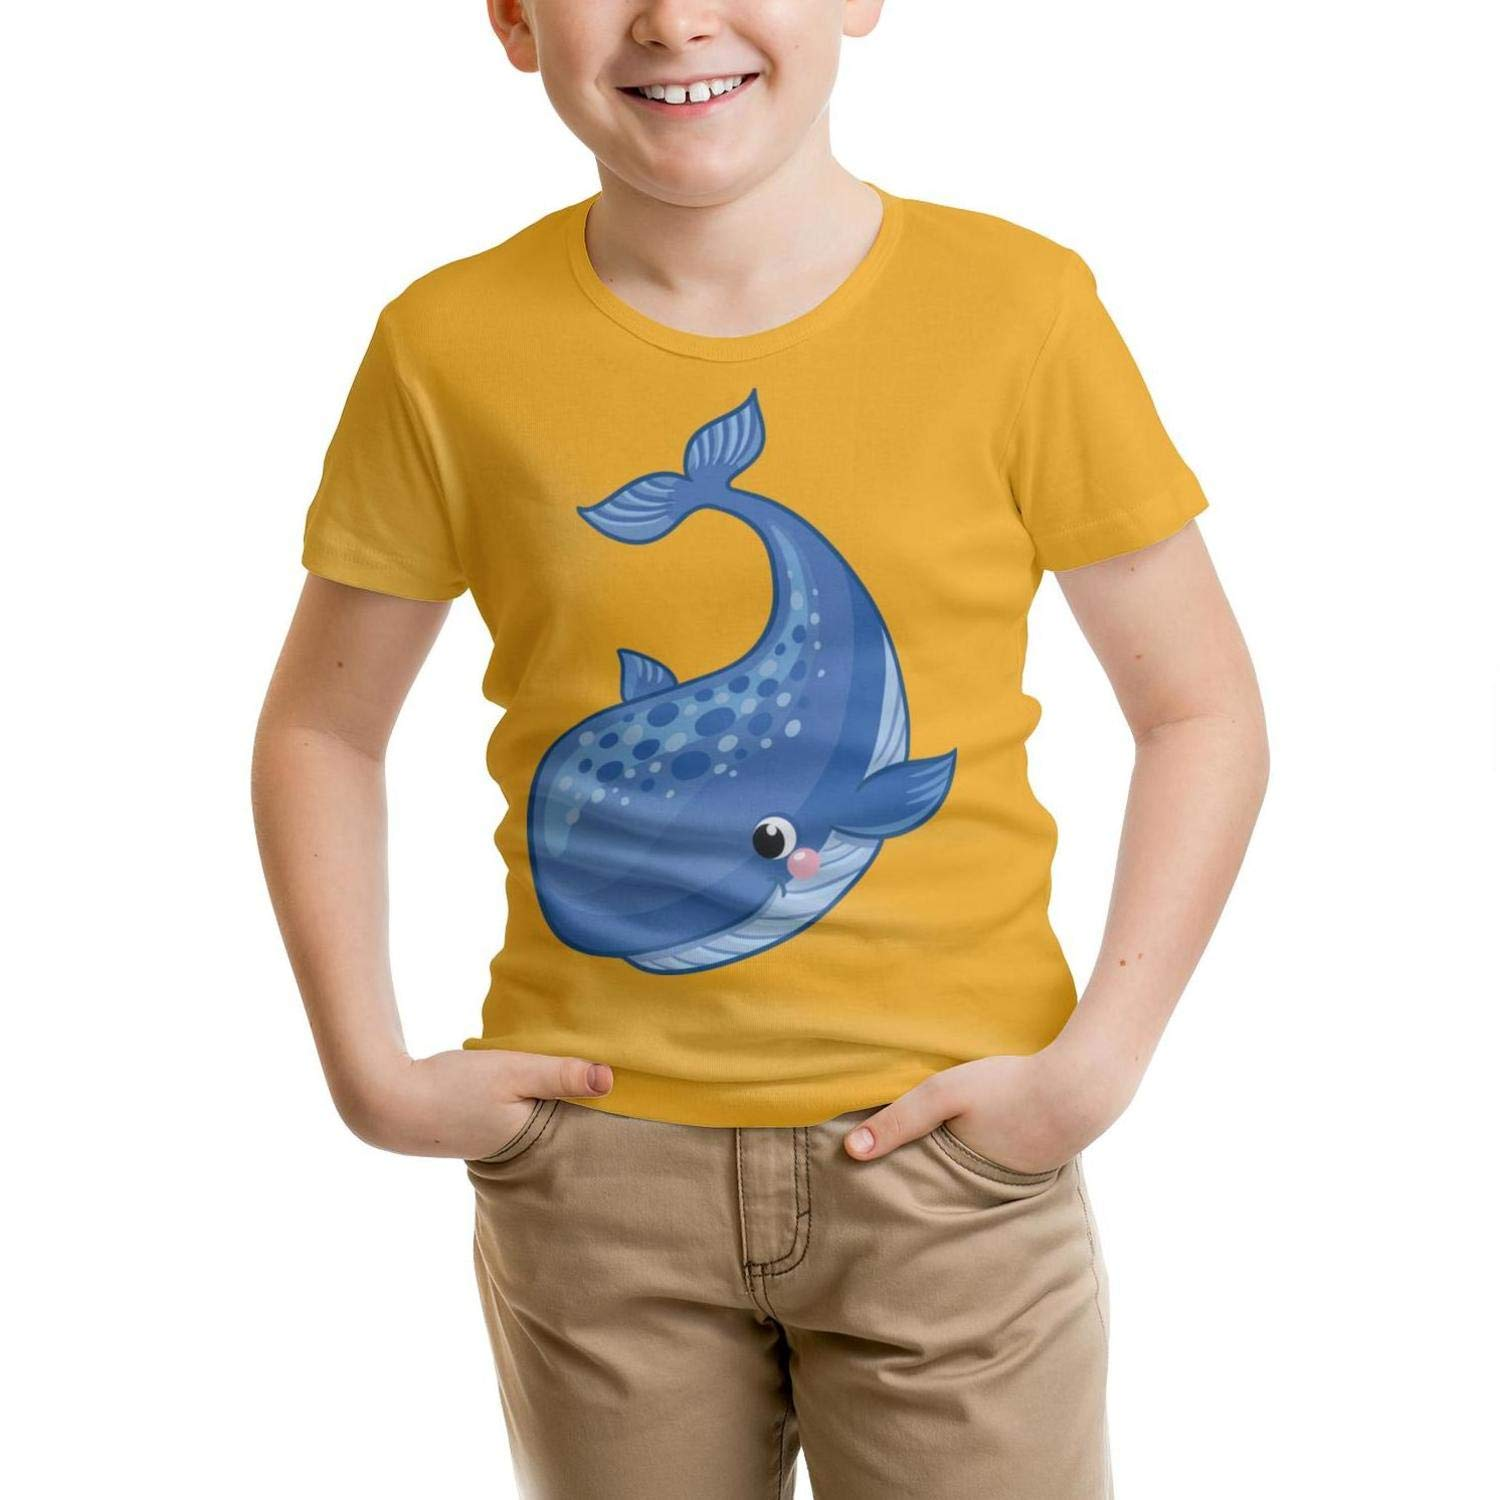 Qruladot Whale All Cotton T Shirts Solid for Kids Shirts